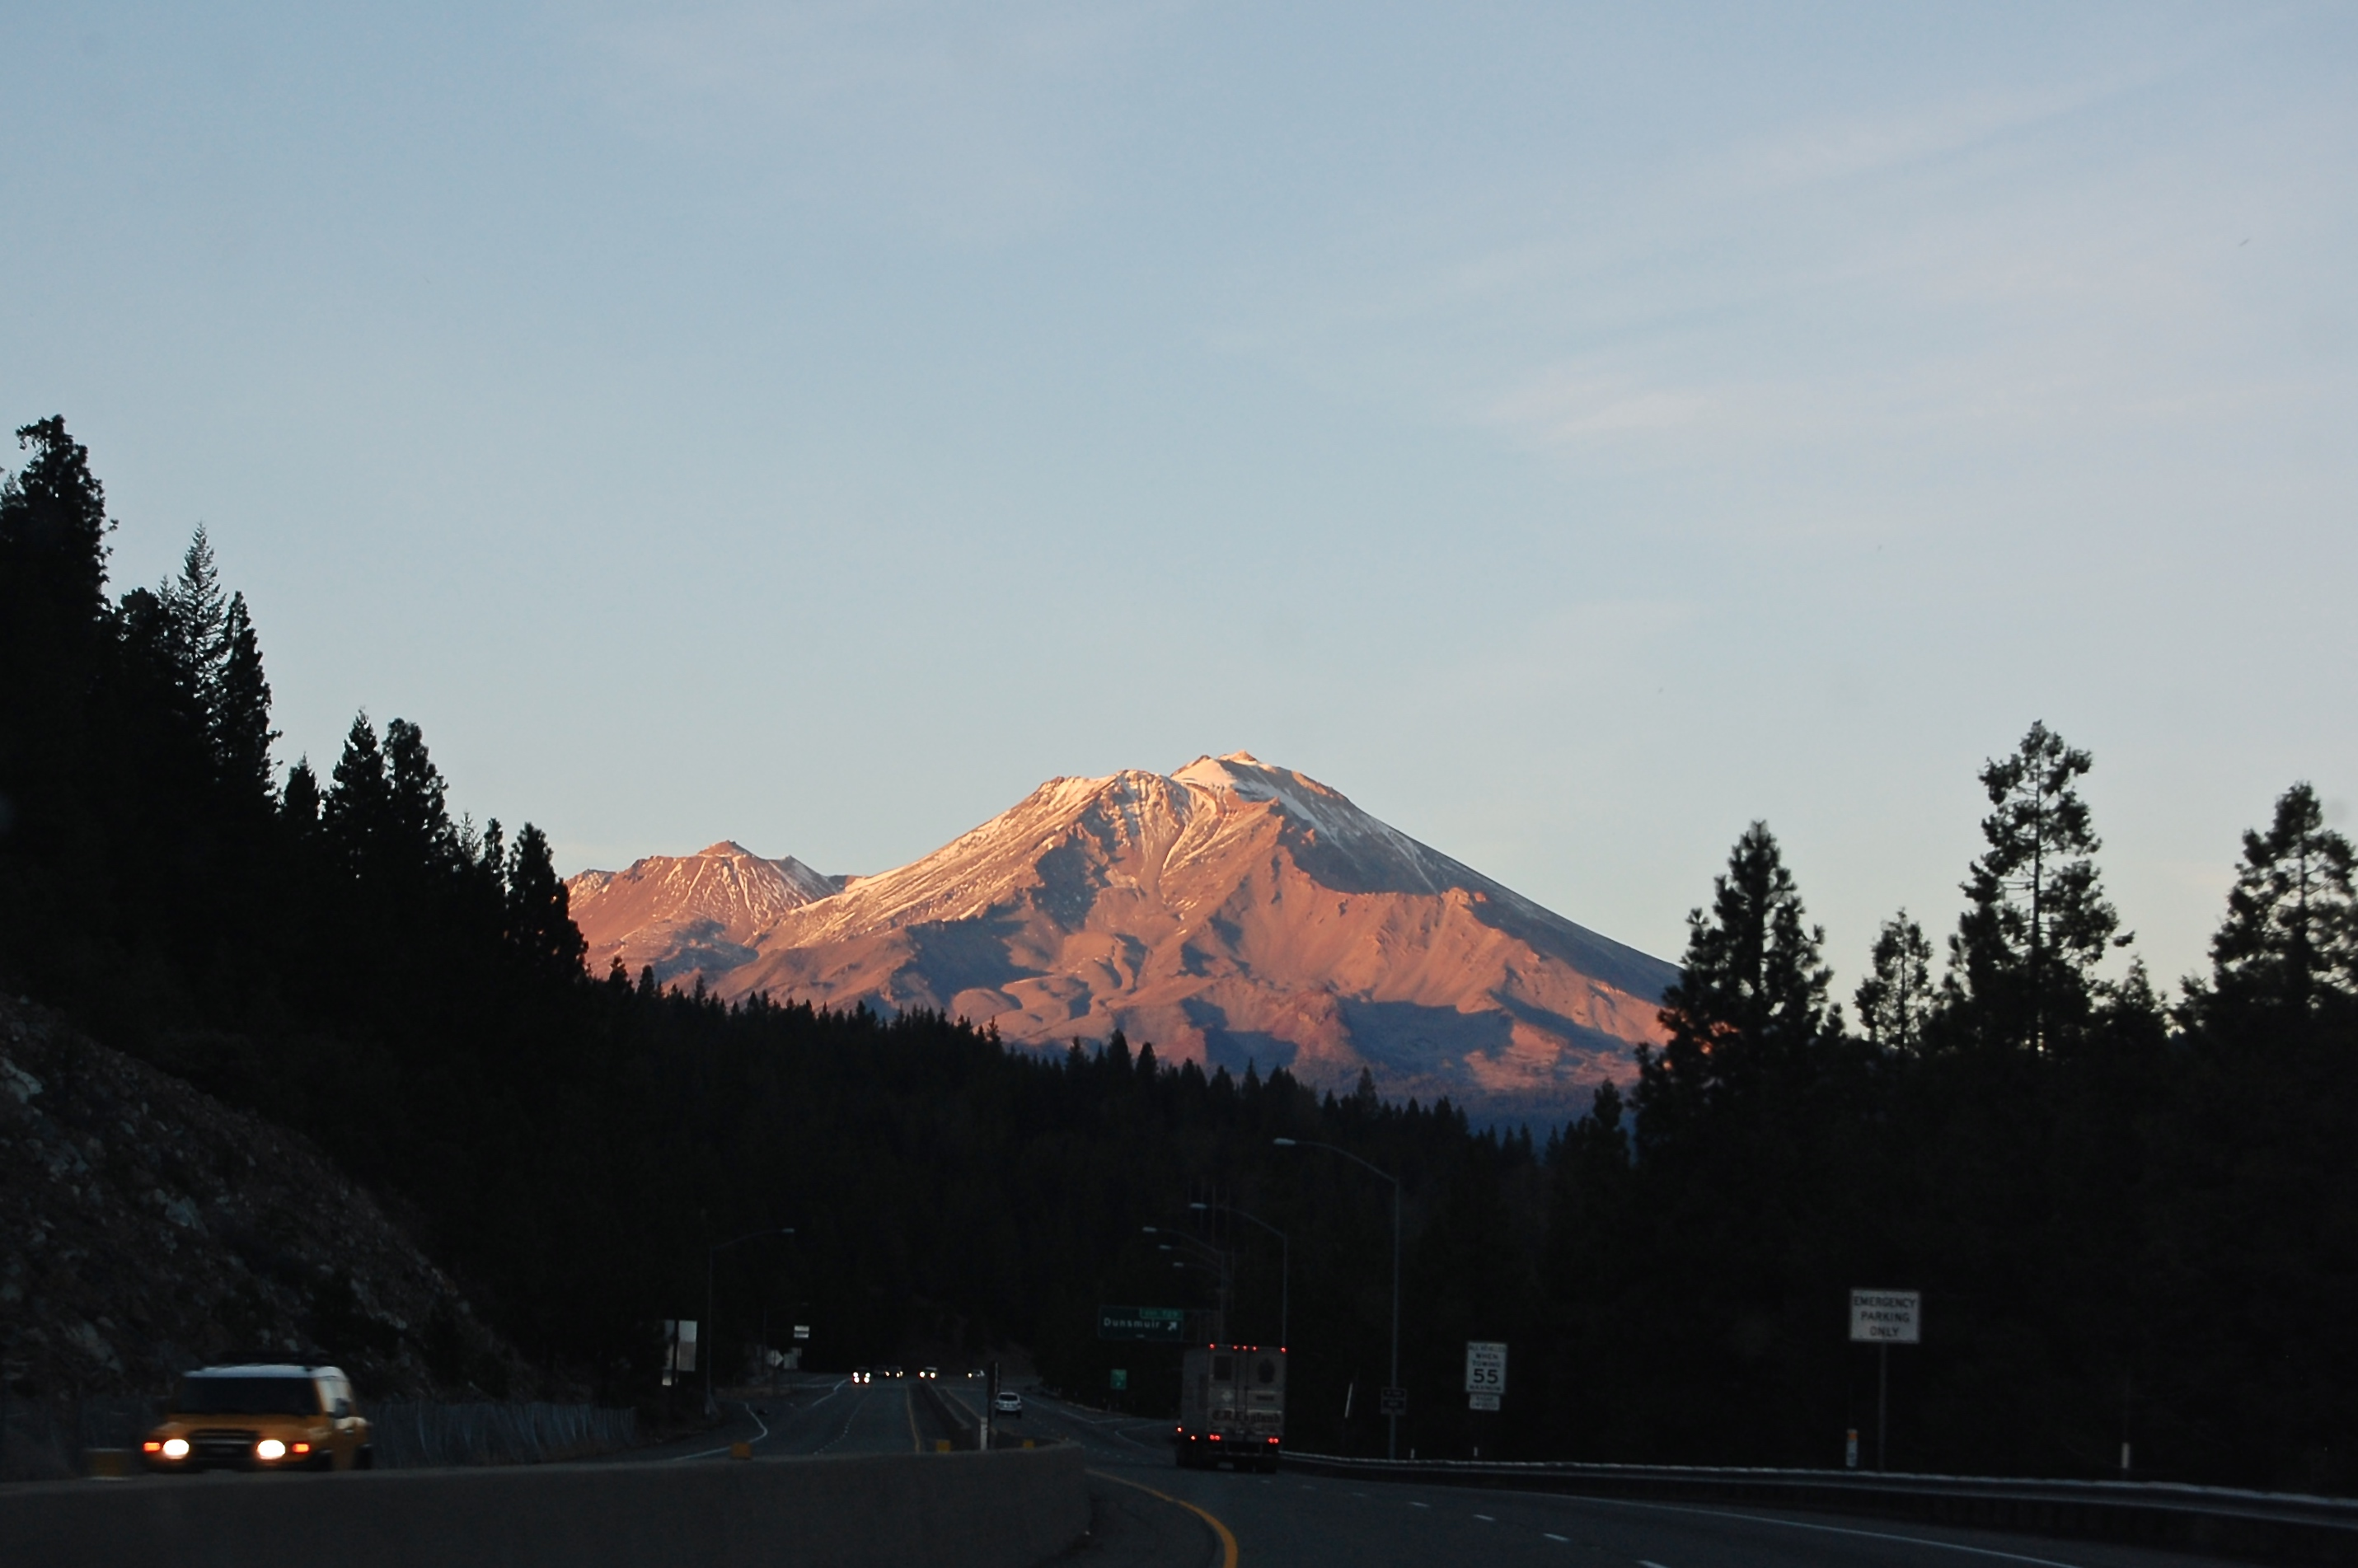 Mount Shasta from afar